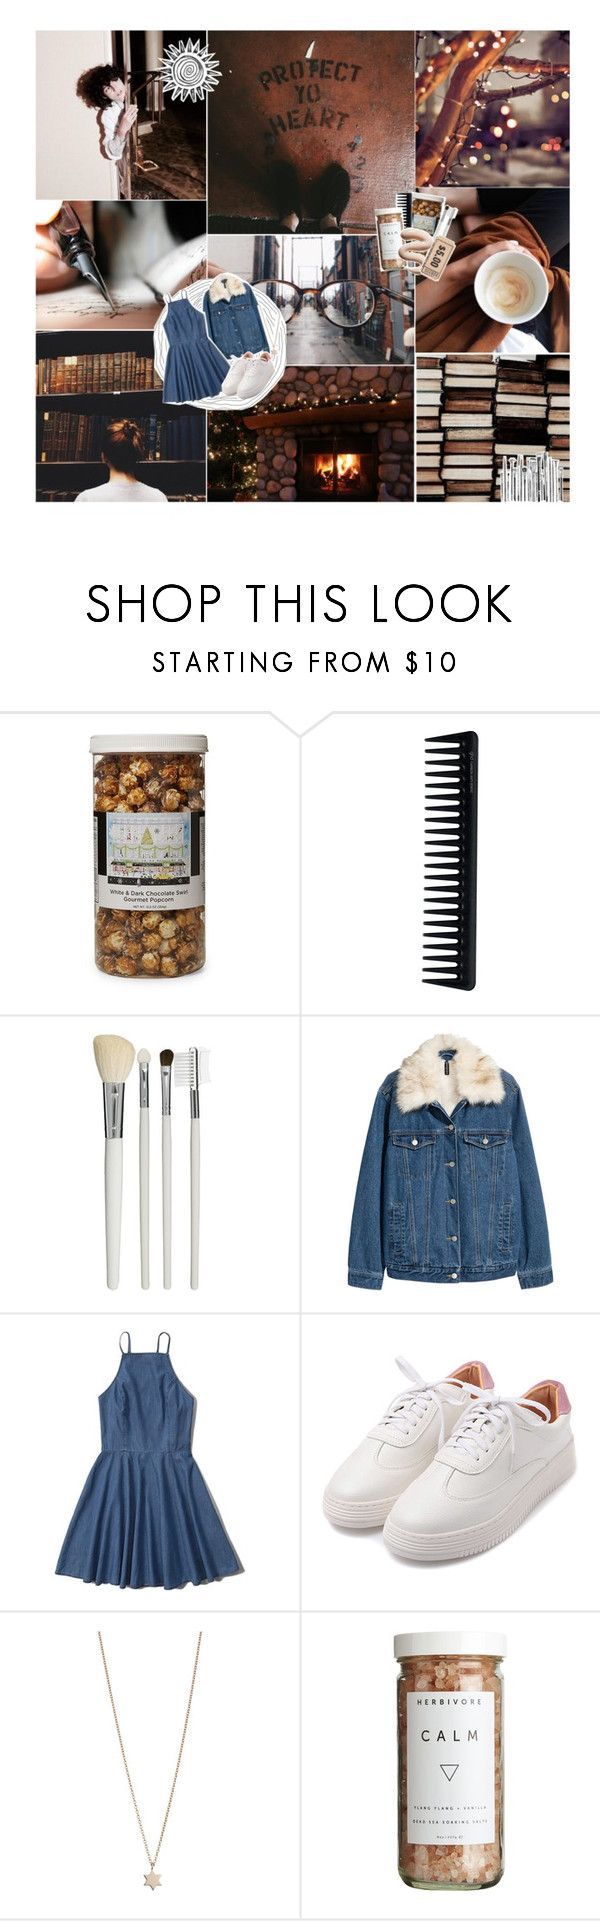 """""i see your face even when my eyes are shut"""" by emmalynterra ❤ liked on Polyvore featuring Public Library, The Hampton Popcorn Company, GHD, Cath Kidston, H&M, Abercrombie & Fitch, Minor Obsessions, CB2 and heartbroken"